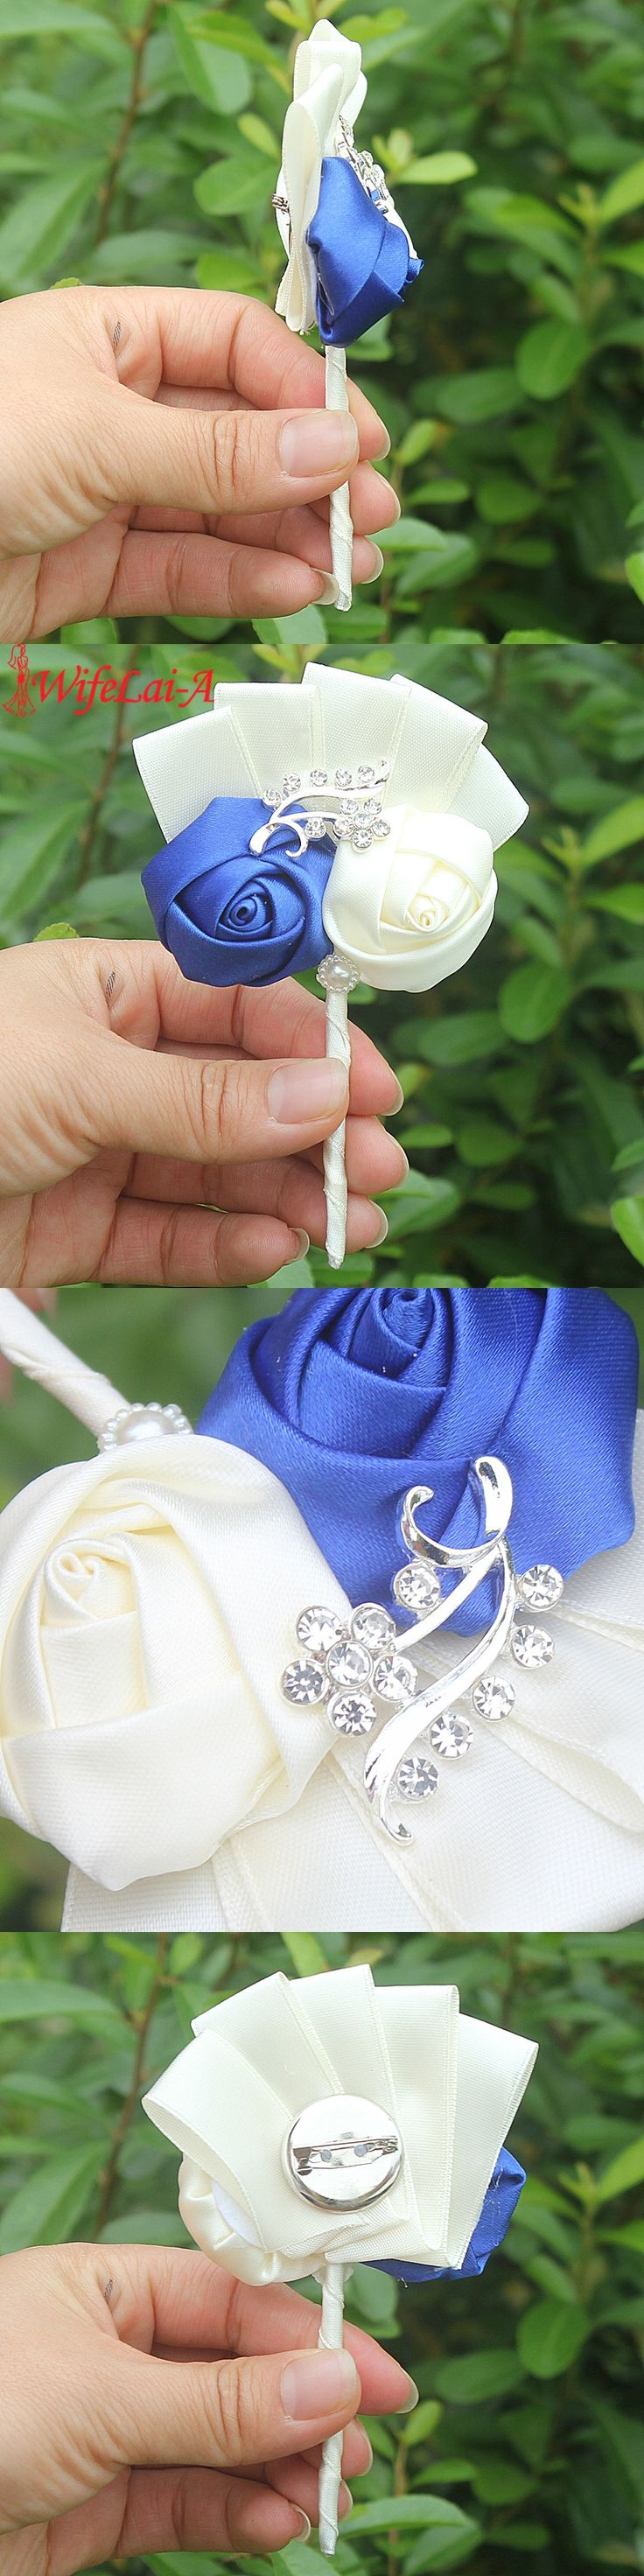 Handmade 1pcs/lot Royal Blue Ivory Wedding Corsages Boutonniere Groom Boutonniere Wedding Flowers Boutonniere Pin Brooch Custom